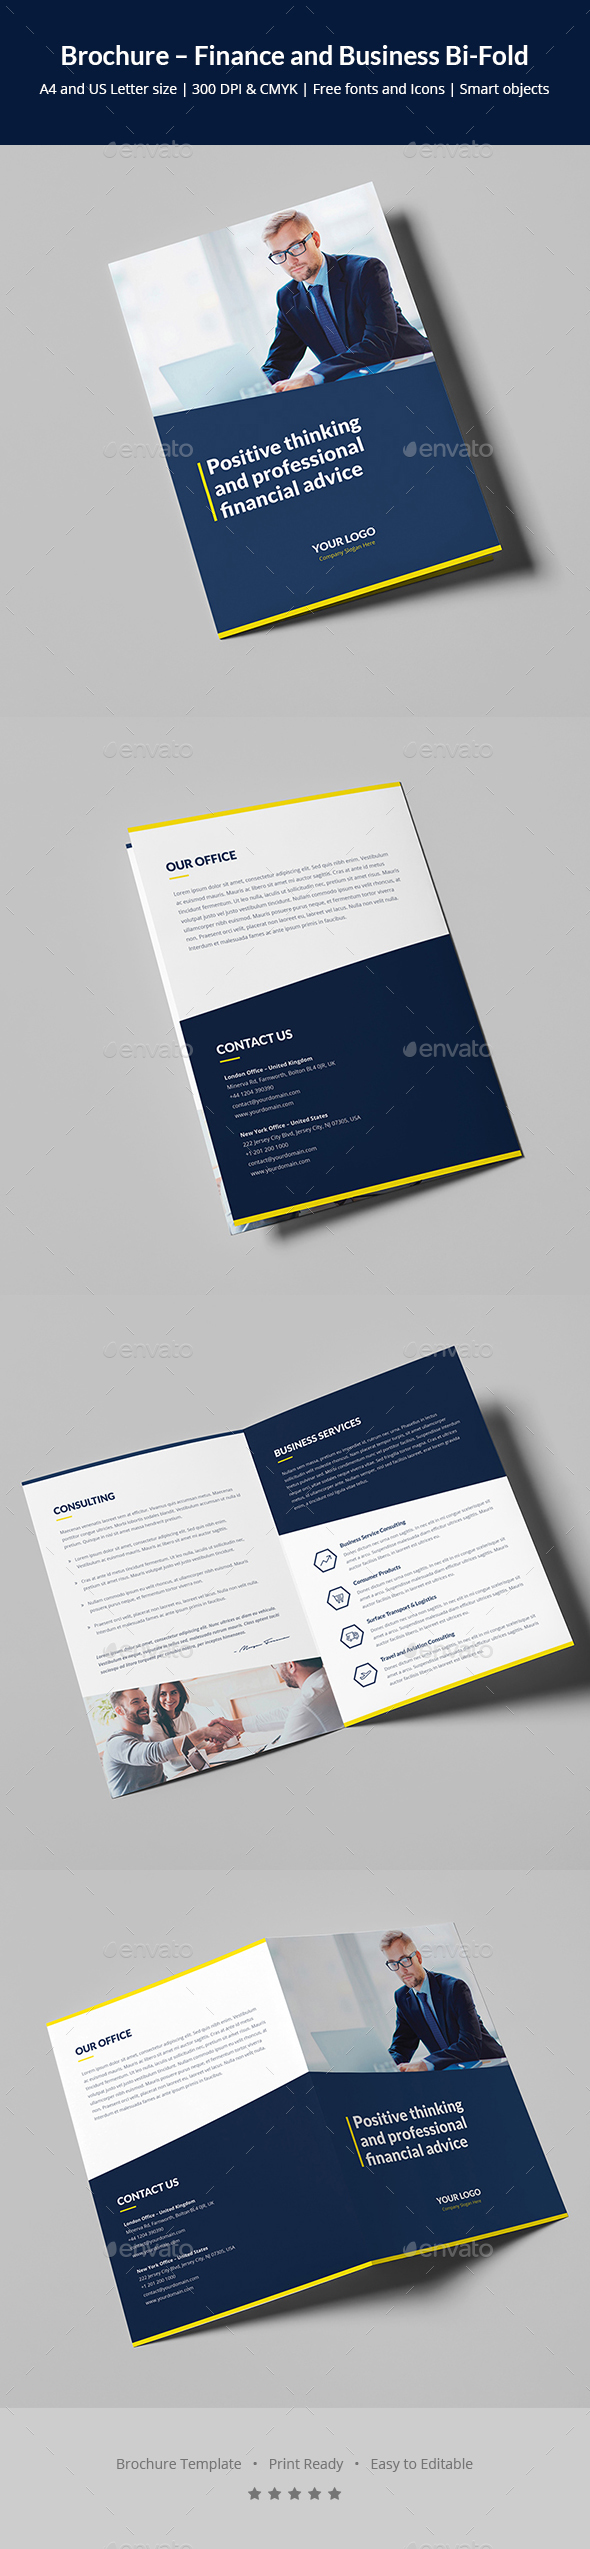 GraphicRiver Brochure Finance and Business Bi-Fold 20633281